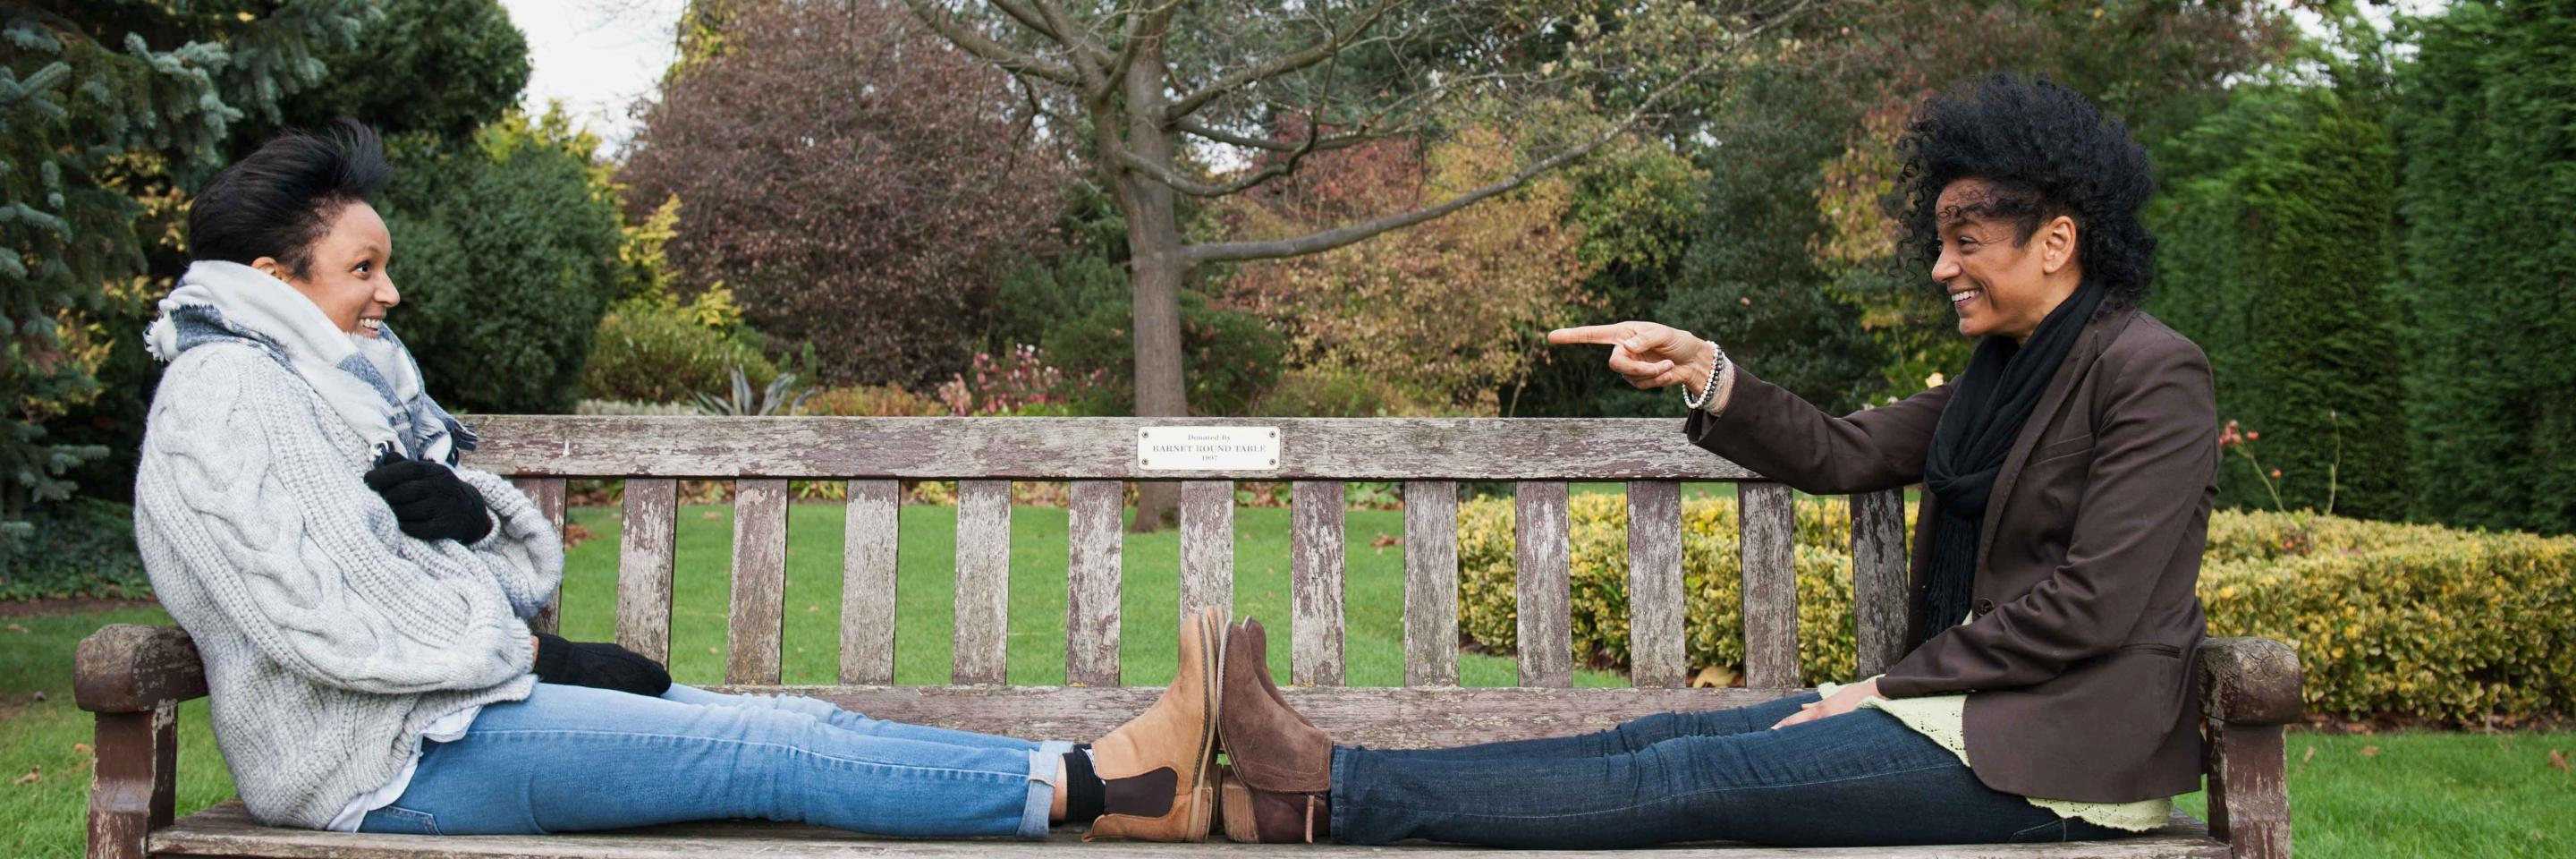 Woman pointing to another woman sitting on park bench